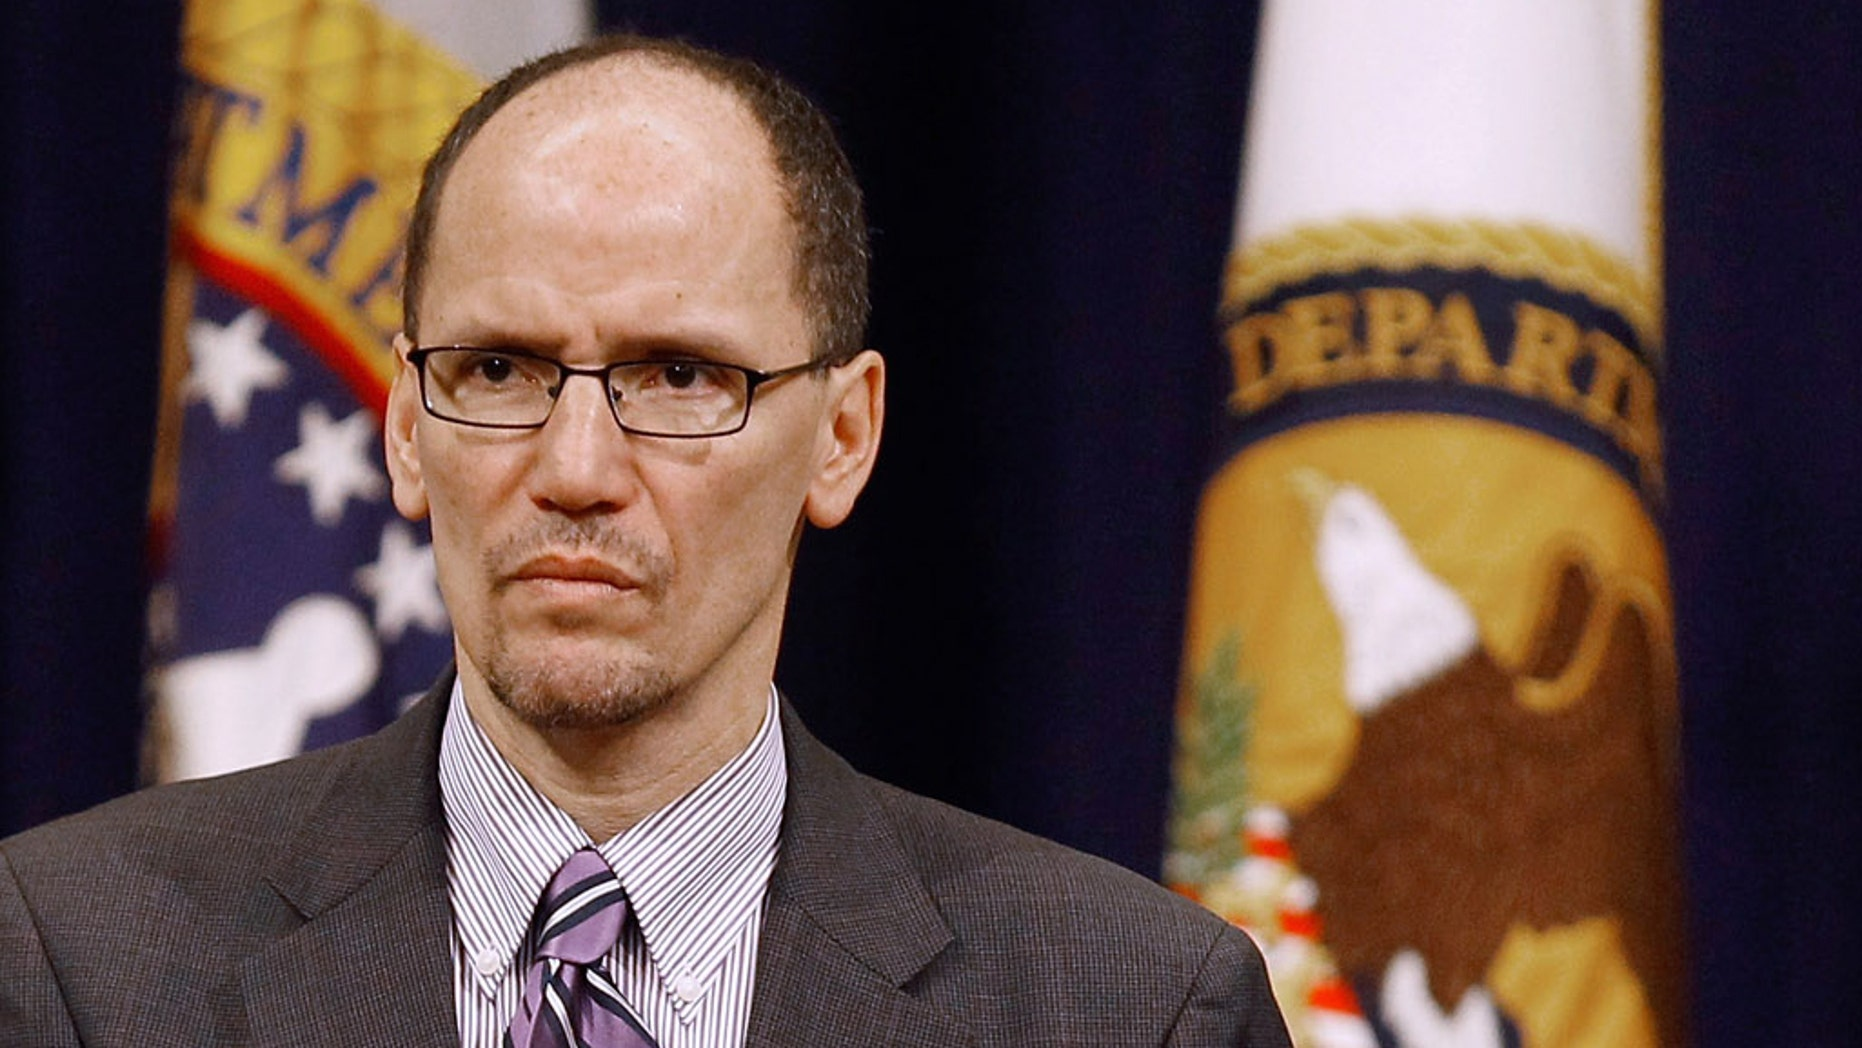 Assistant Attorney General for Civil Rights Thomas Perez listens to the Star Spangled Banner during the Dr. Martin Luther King, Jr. Commemorative Program at the Department of Justice January 11, 2011.